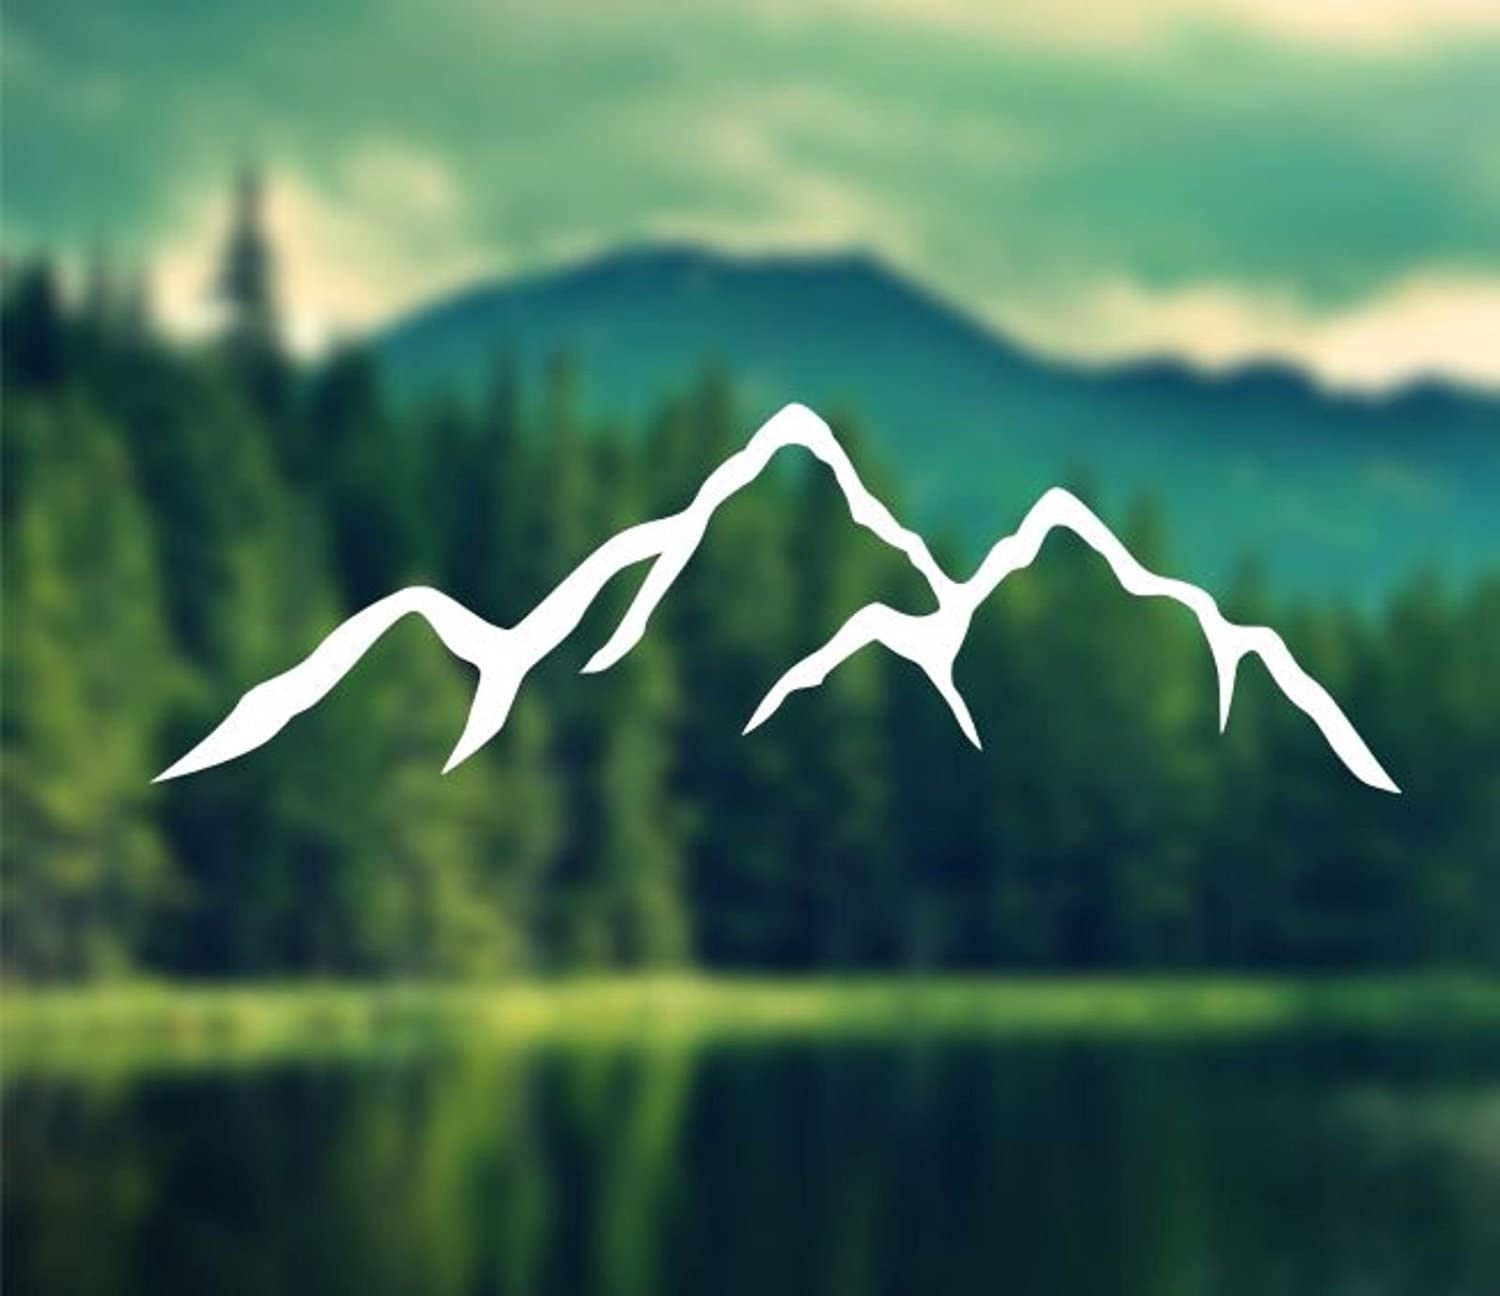 Decal Mountains Silhouette Mountain Vinyl Decal Car Decal, Laptop Decal, Macbook Decal, Ipad Decal (2